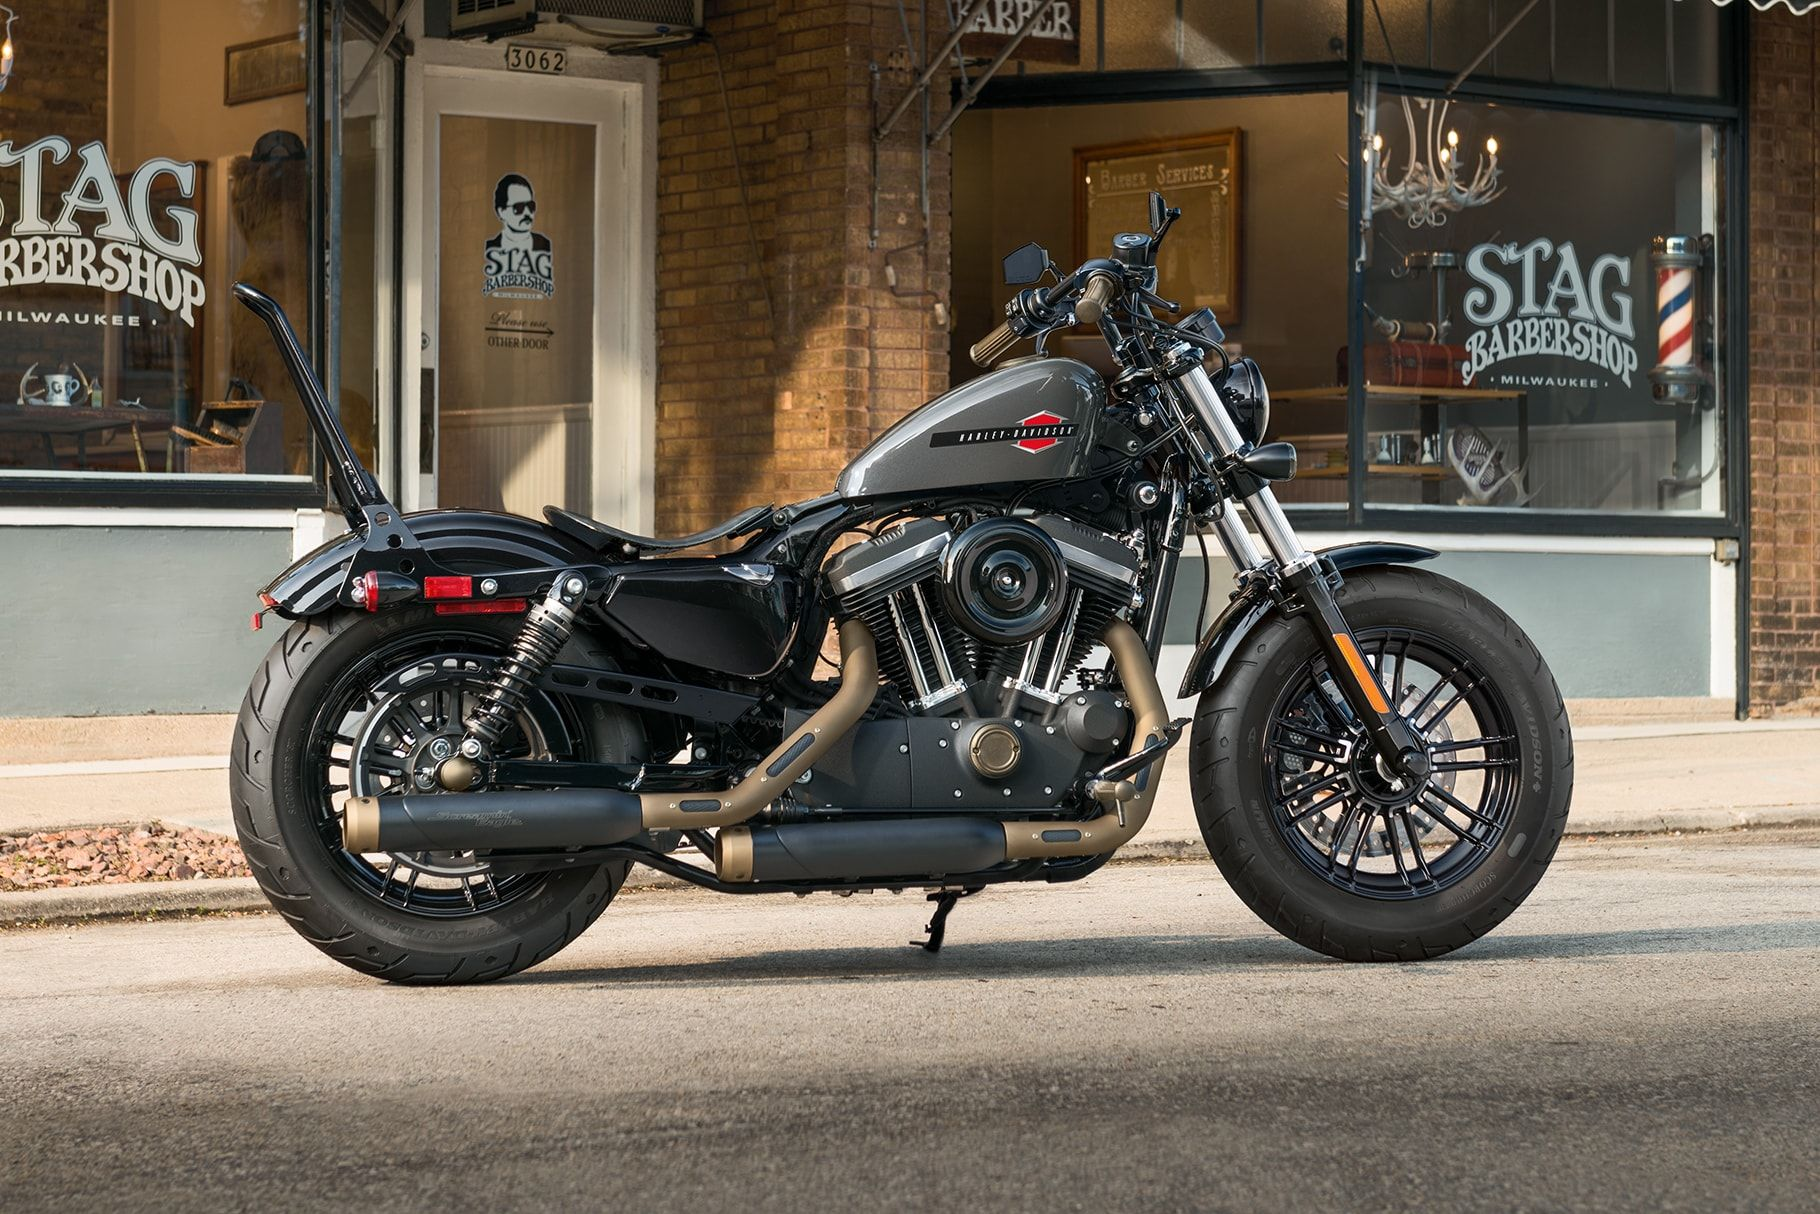 Forty Eight Classic Harley Davidson Harley Davidson Motorcycles Harley Davidson Pictures